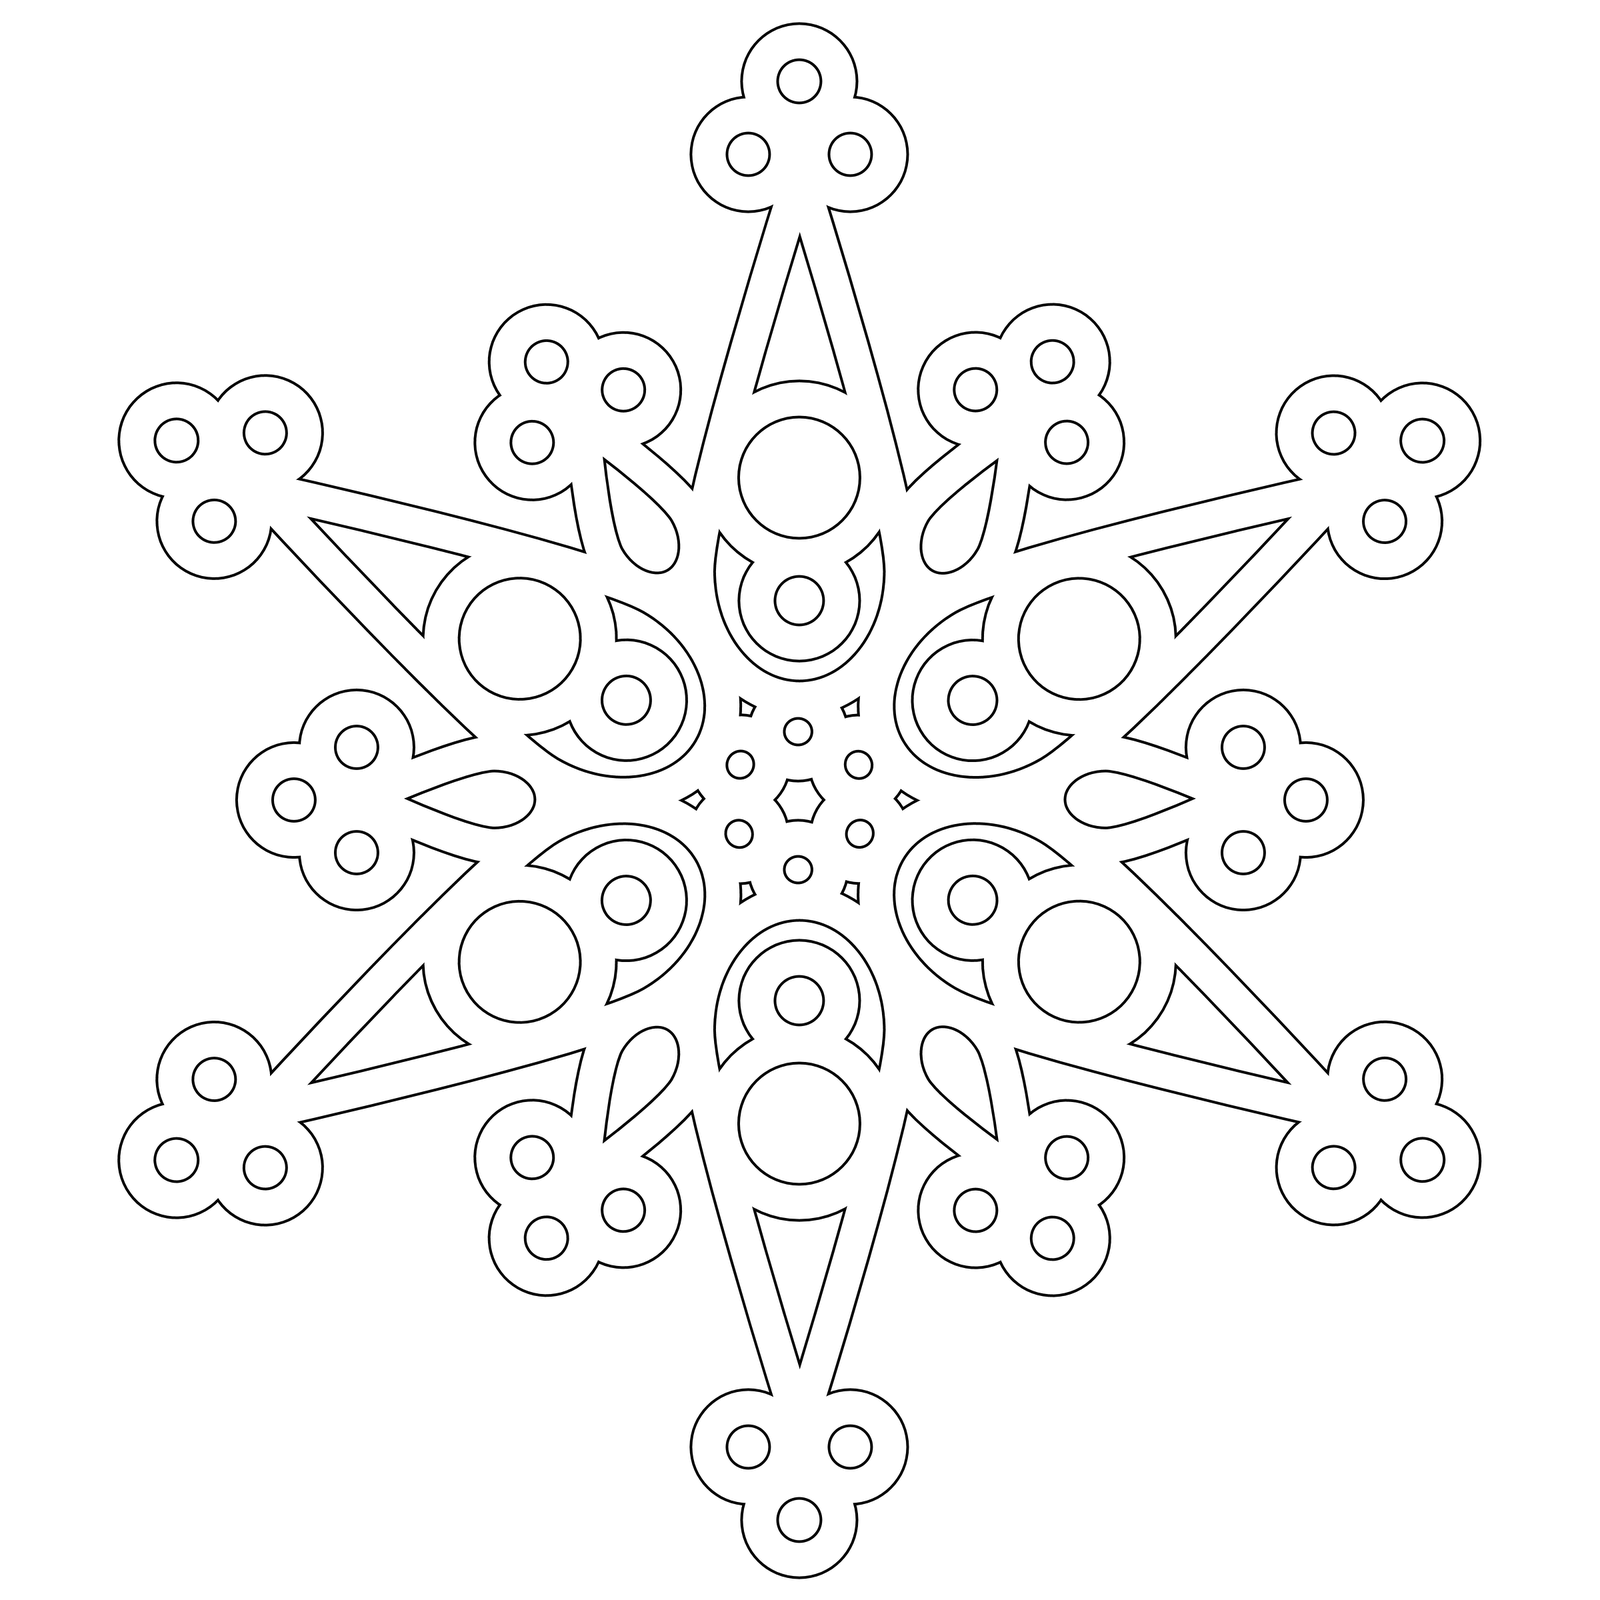 Snowflake Patterns Coloring Pages